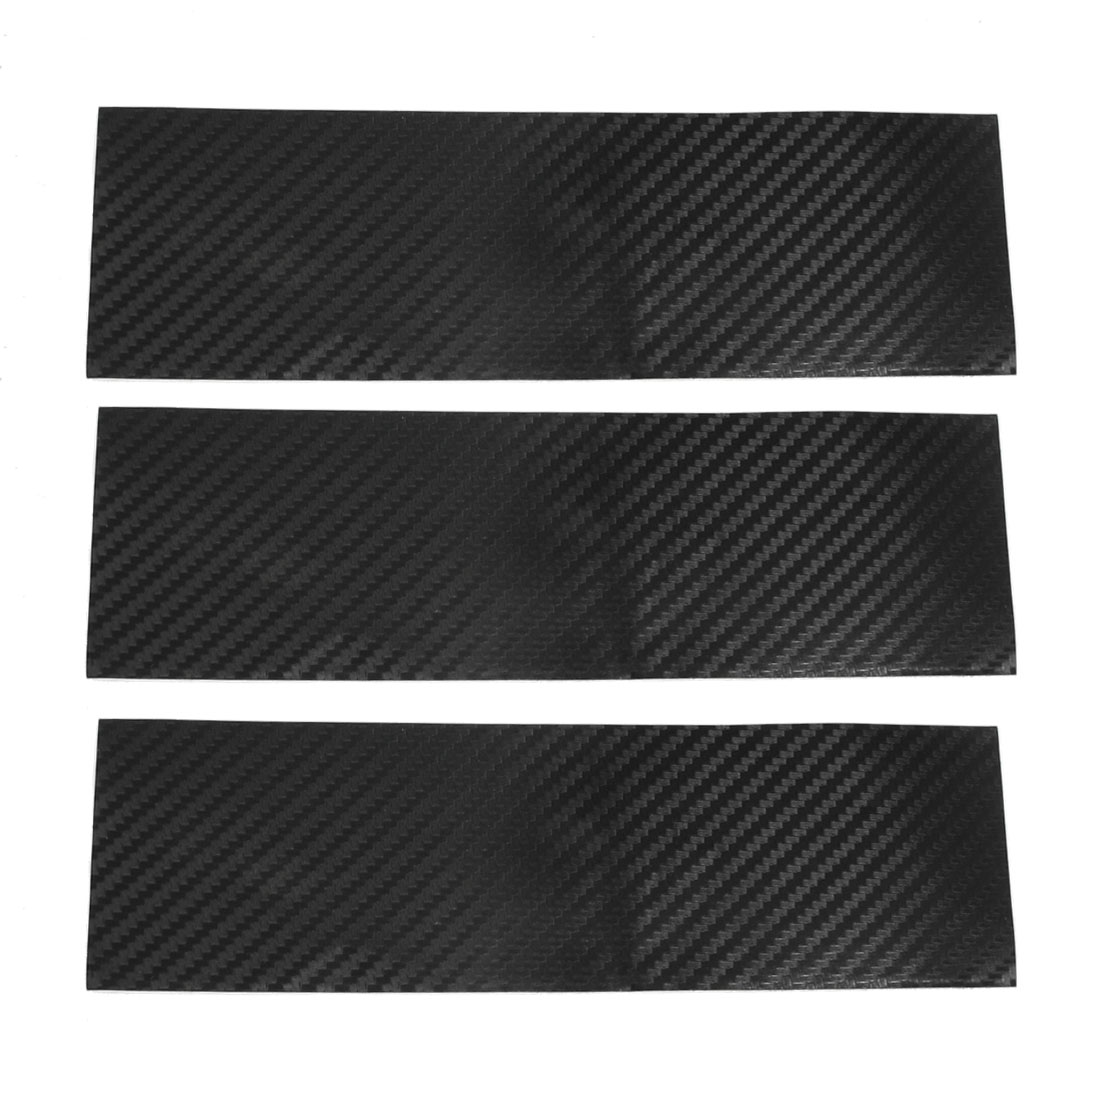 3 Pcs Black Car Wave Pattern Carbon Fiber 3D Film Sticker 6x20cm